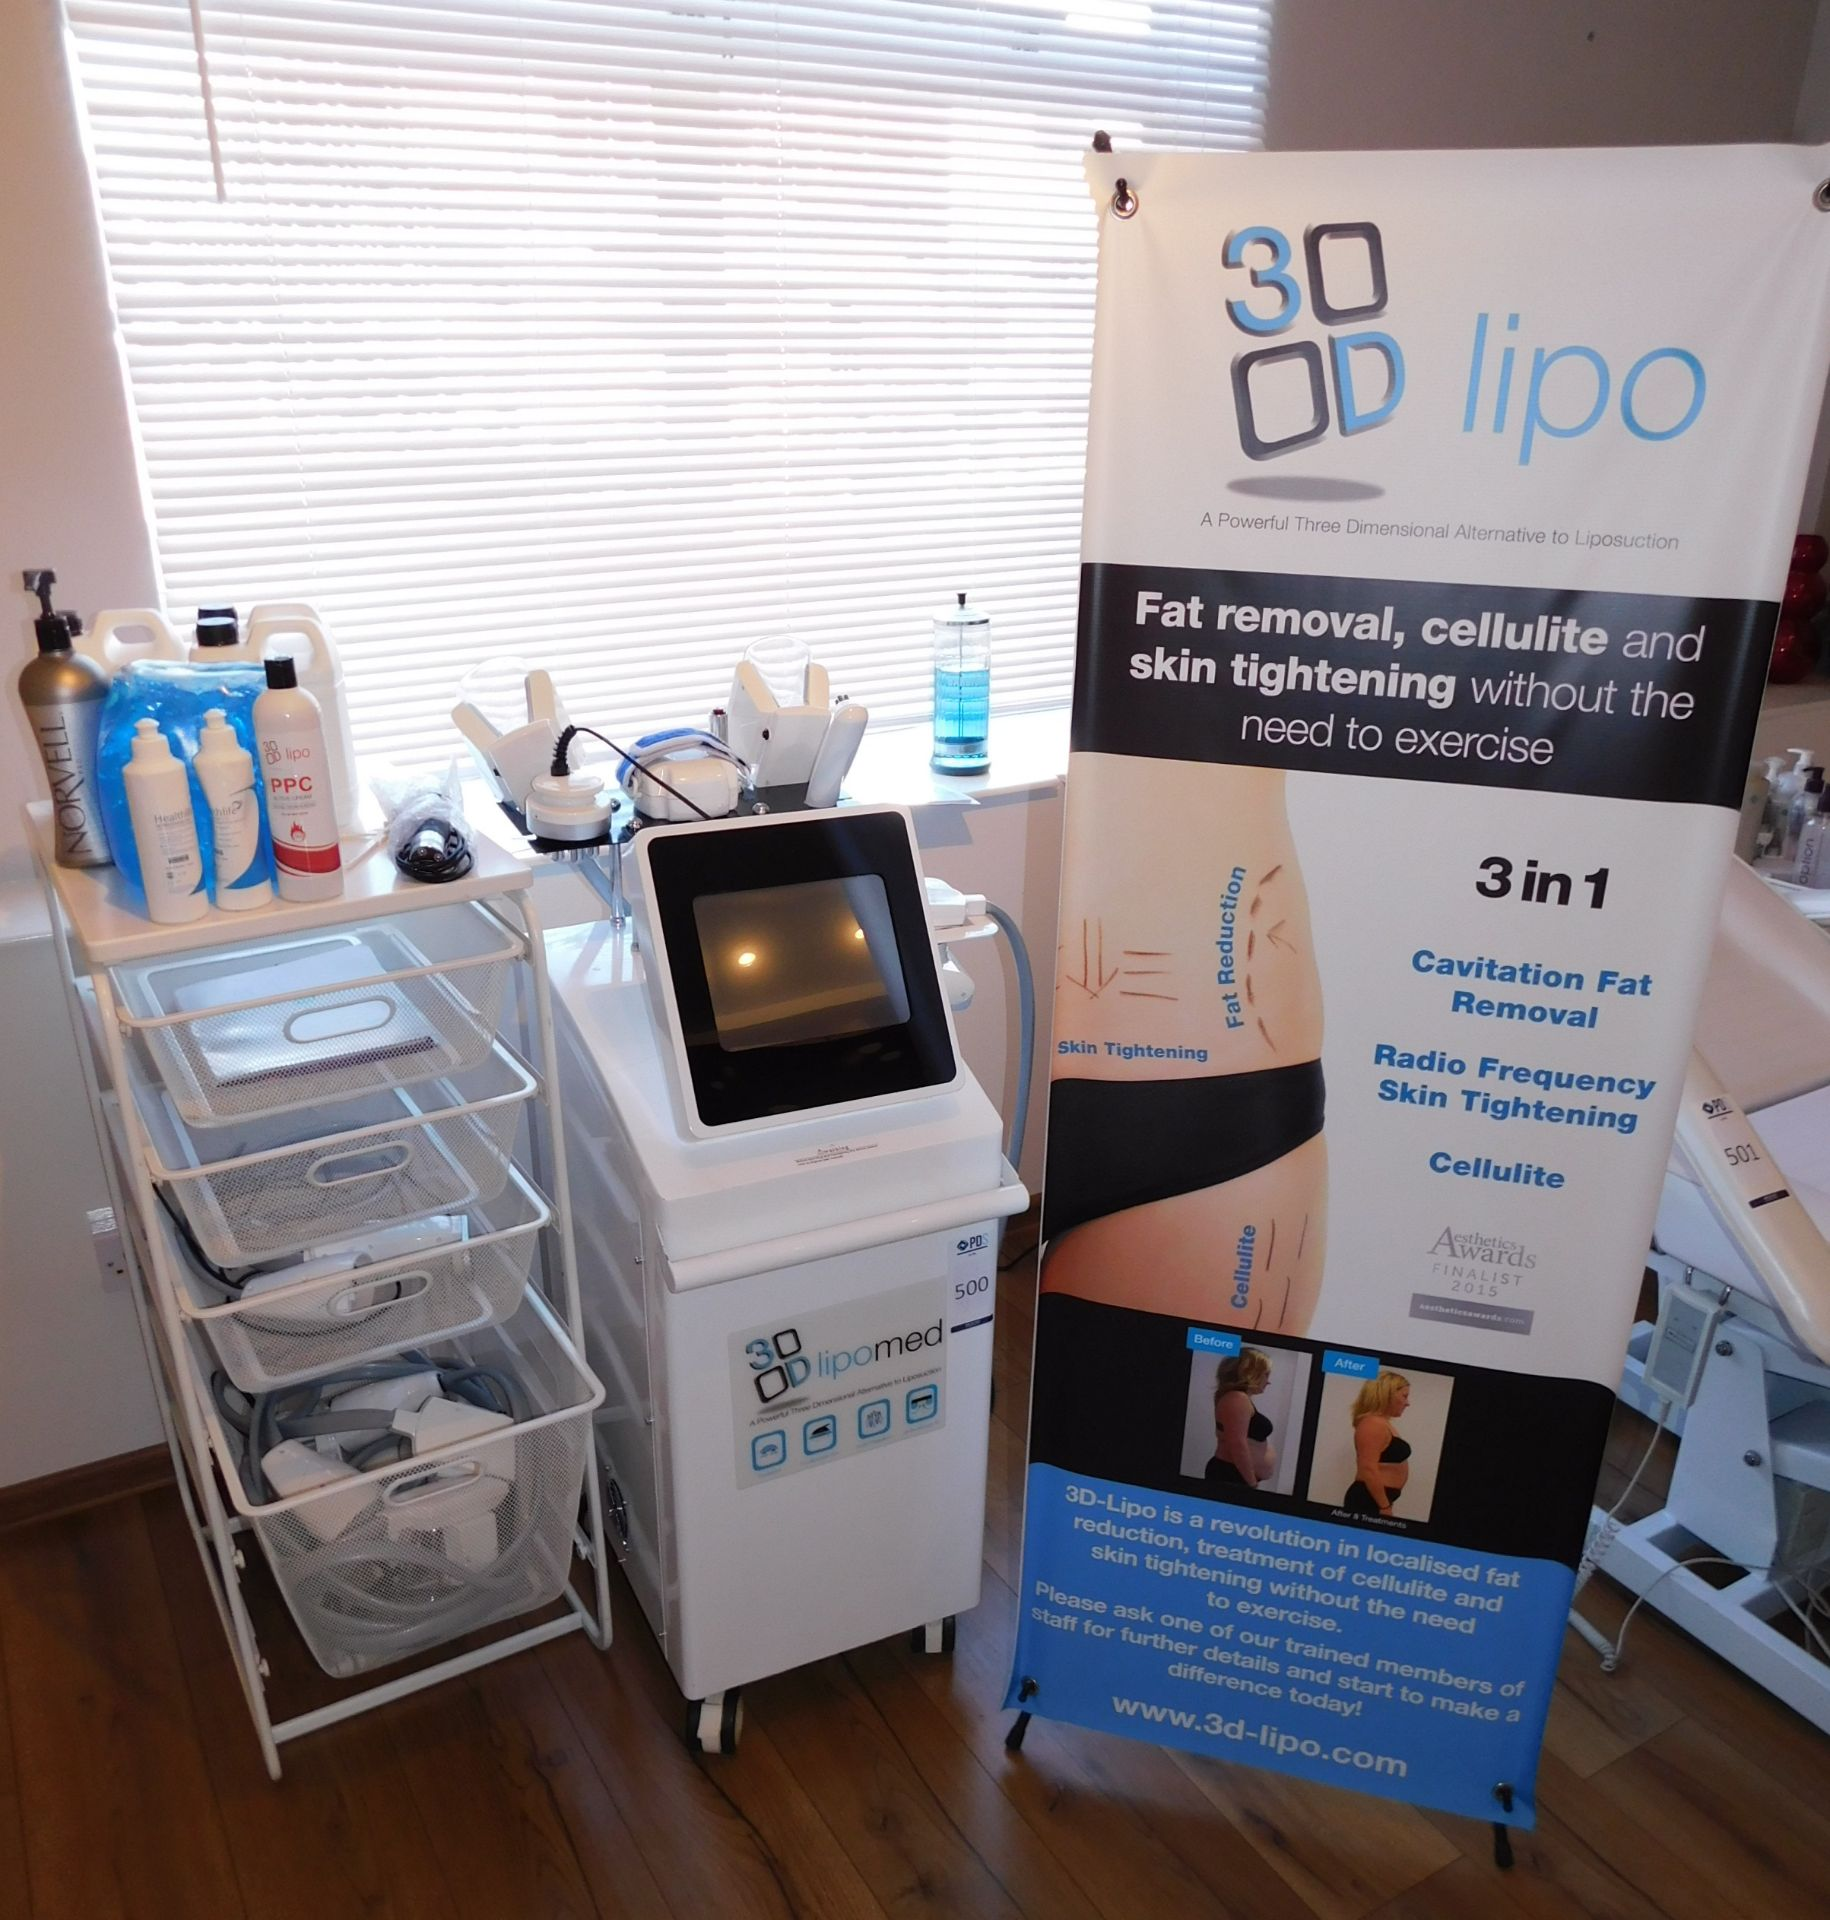 3D Lipo Med + Non-Surgical Treatment Device (2015) & Trolley of Assorted Accessories &